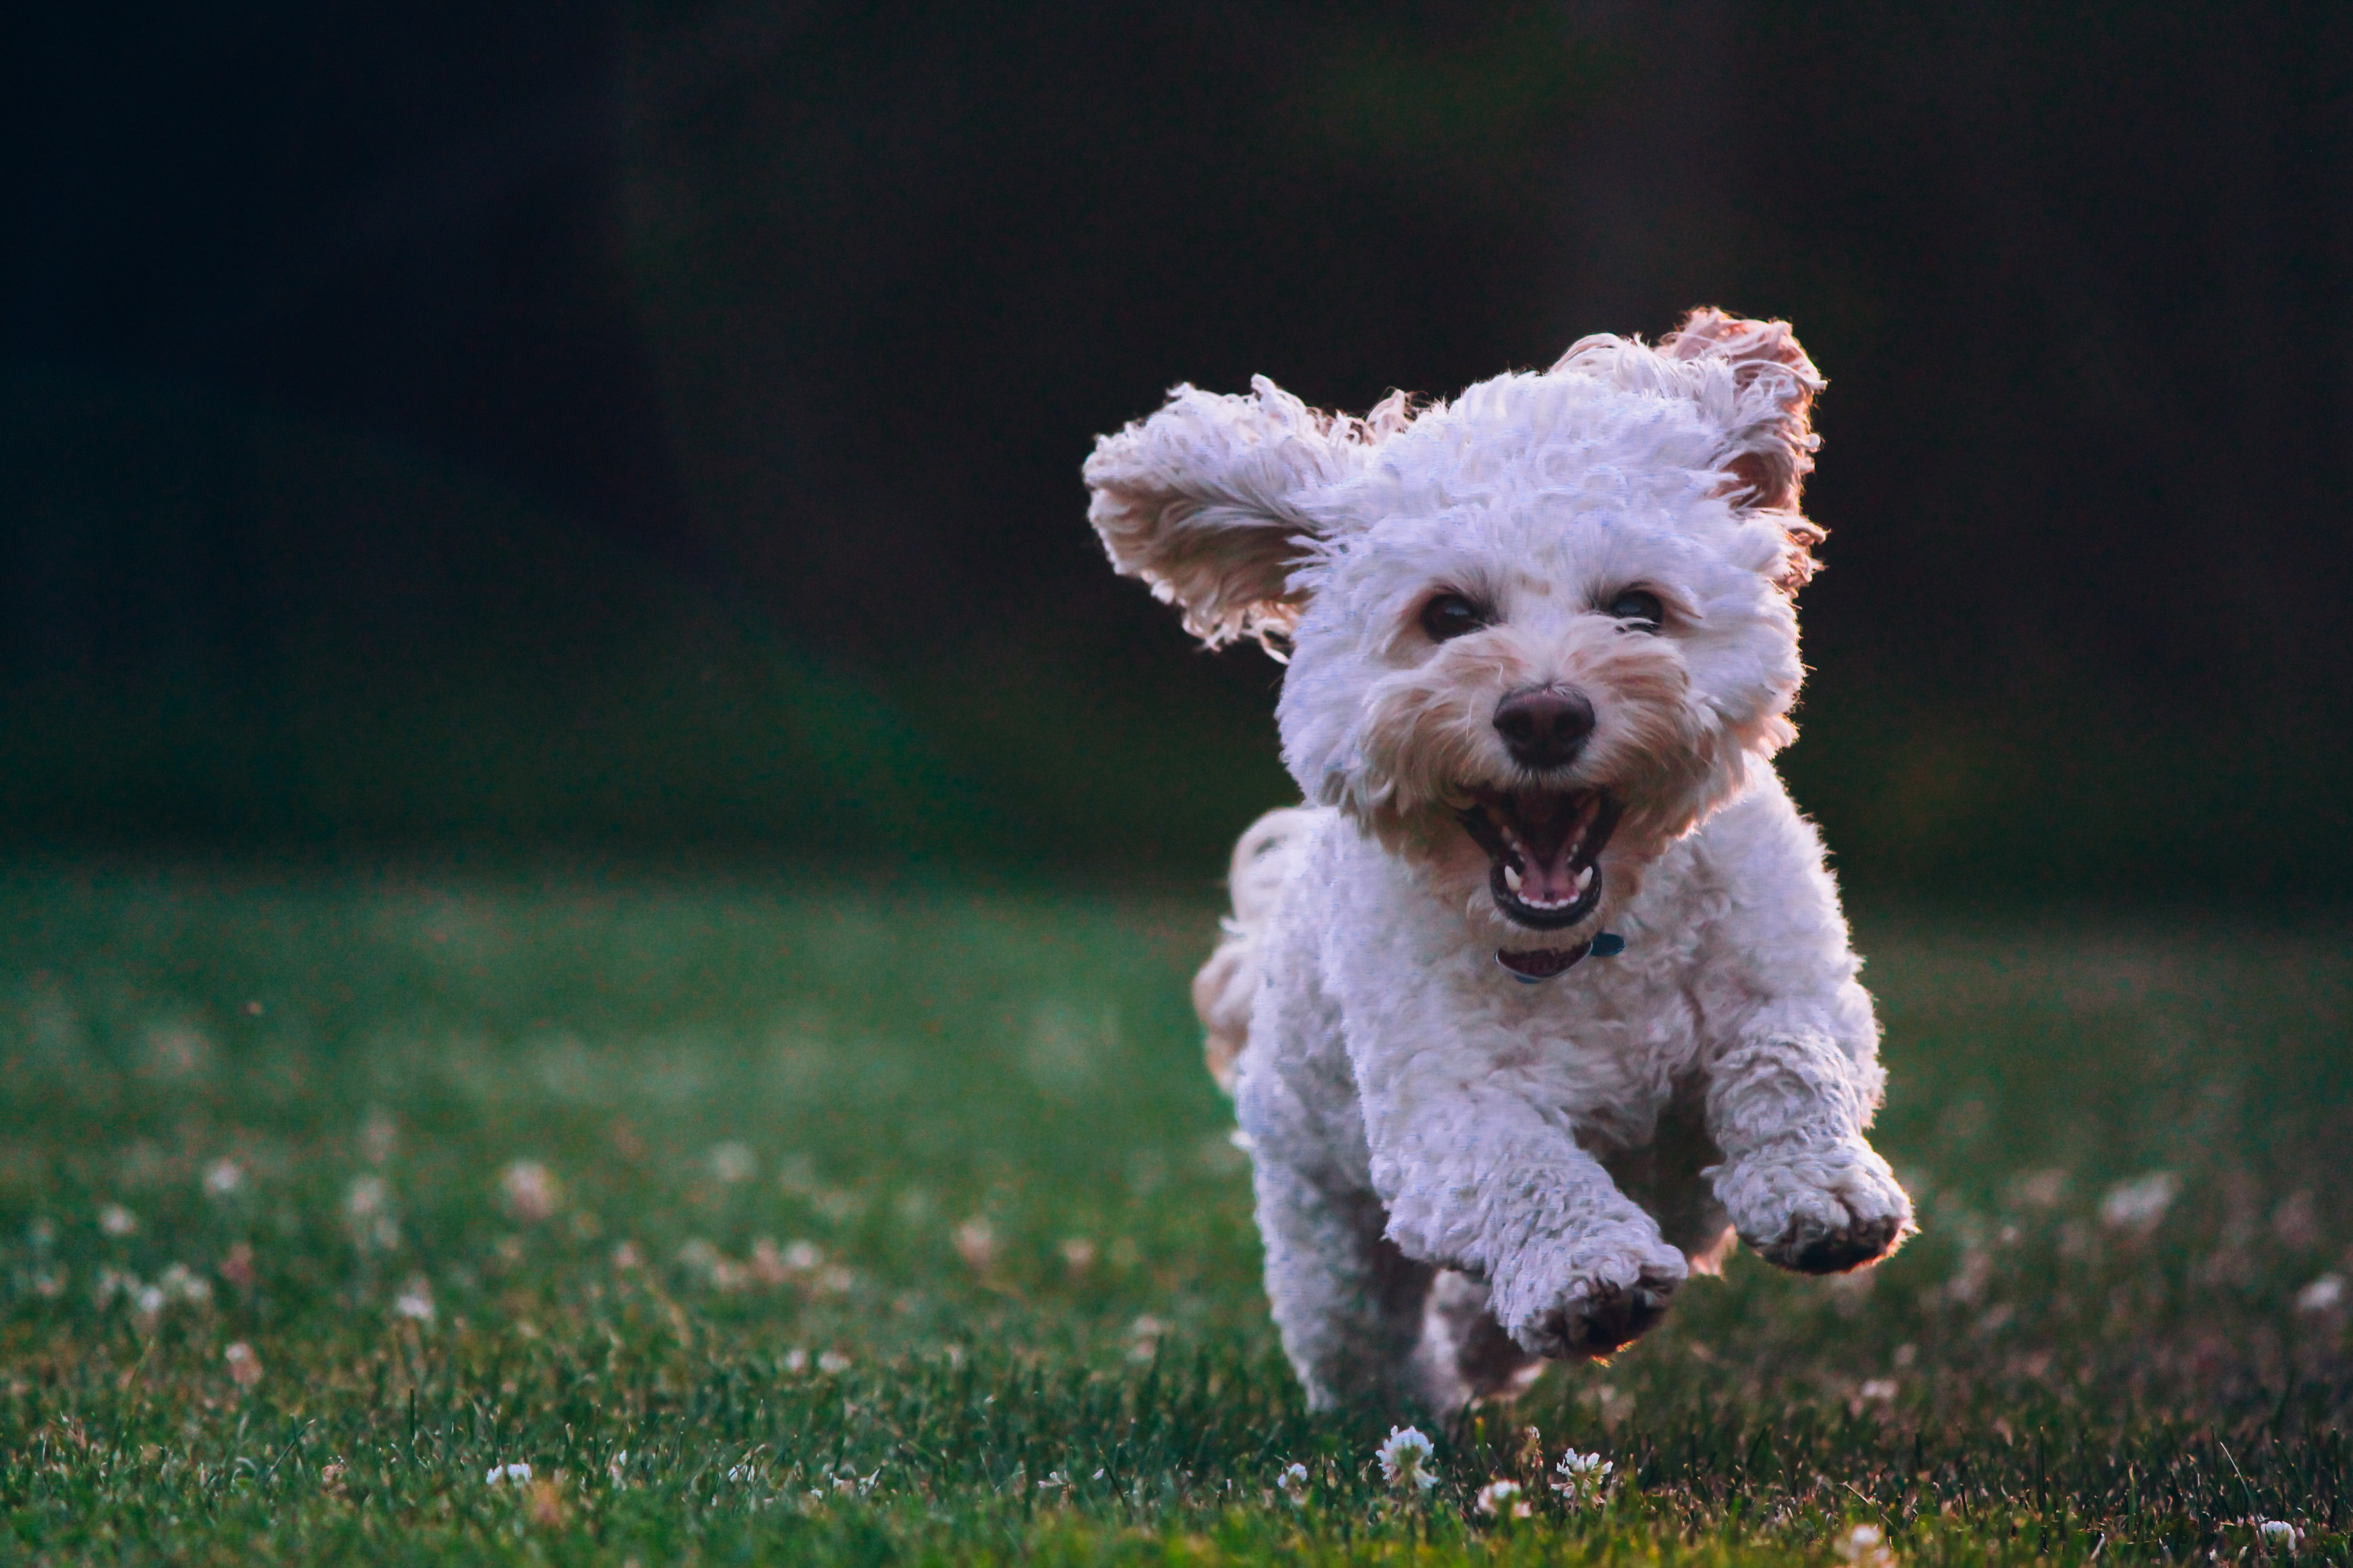 Build Your First Computer Vision Project—Dog Breed Classification